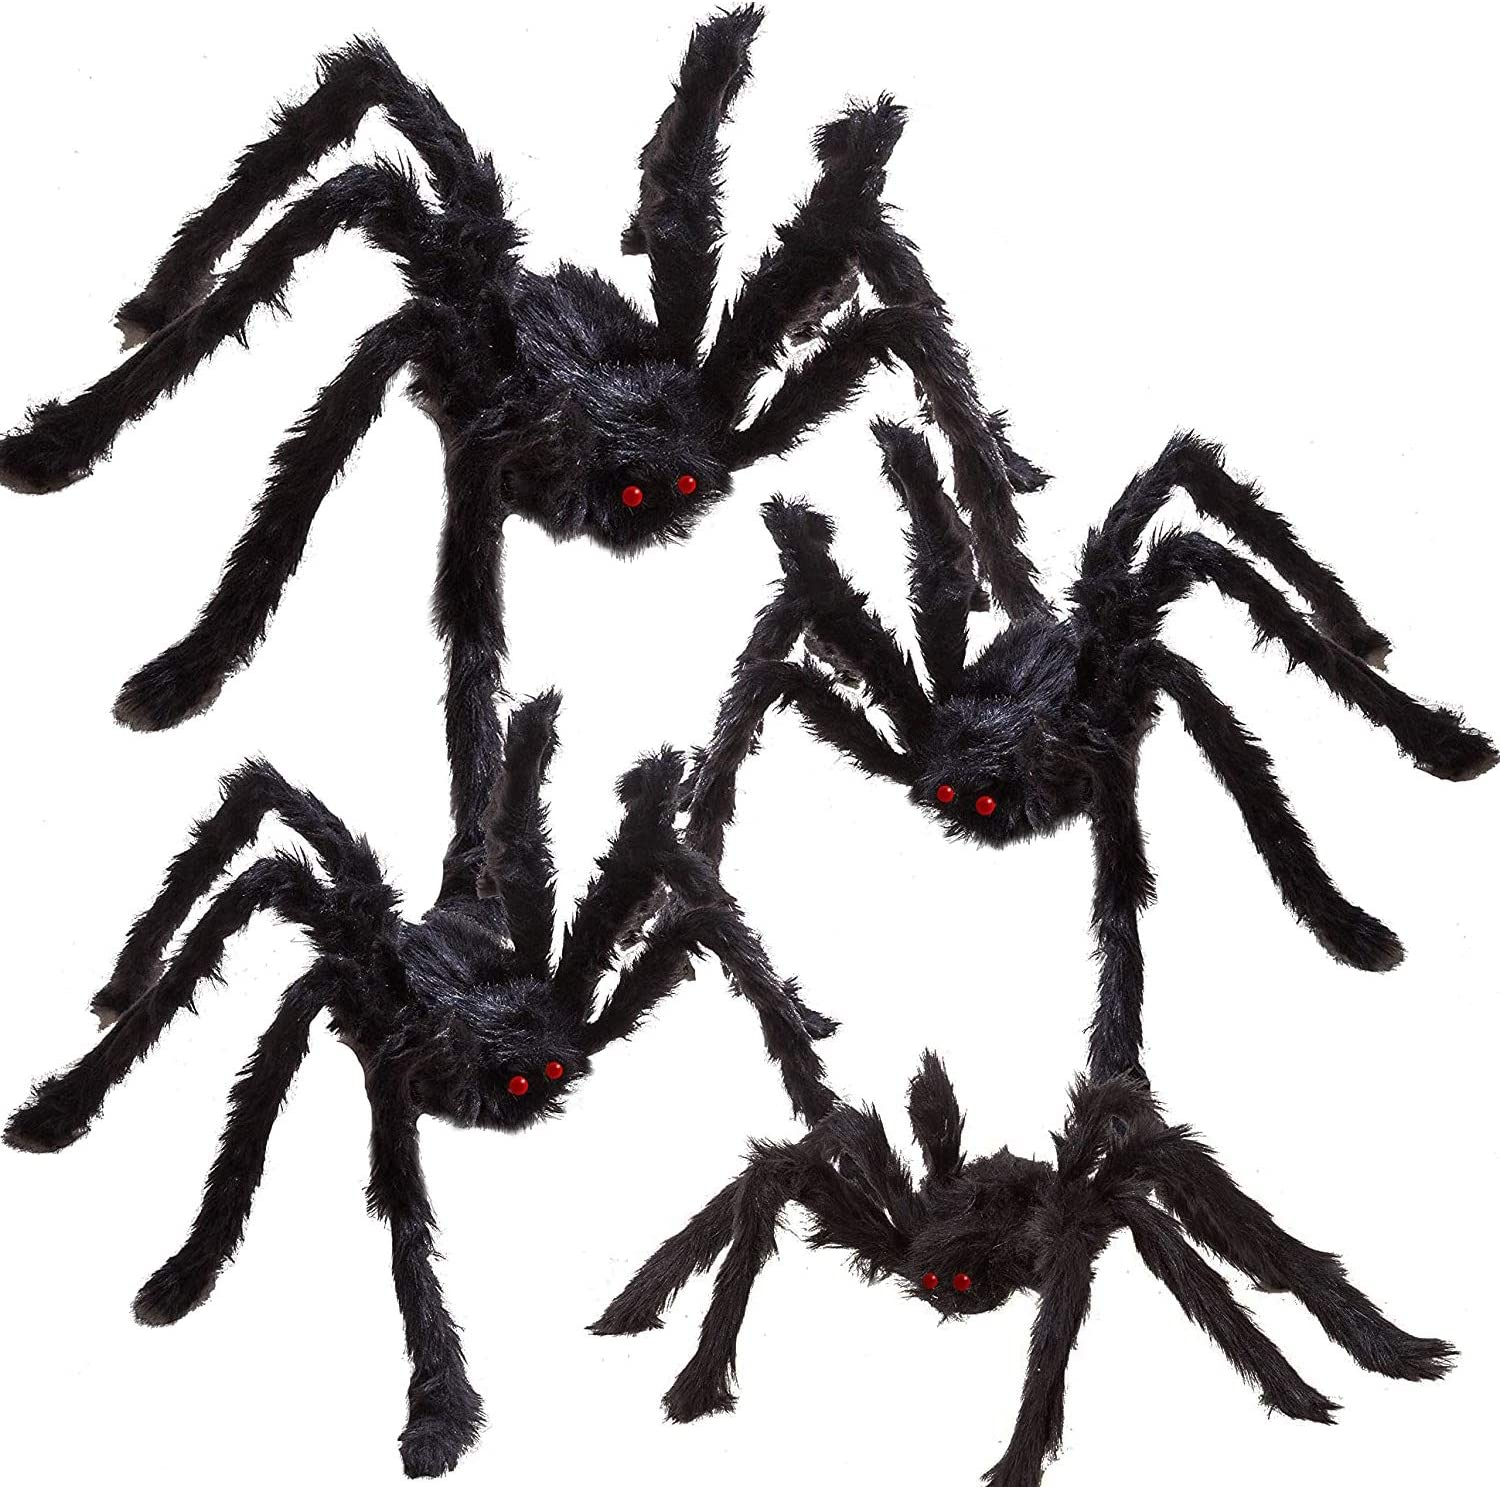 REDSTORM Halloween Spider Decoration Black Simulation 60 Inches Giant Scary Hairy Spider for Halloween Outdoor or Indoor Decoration 1 PCS Black Spider